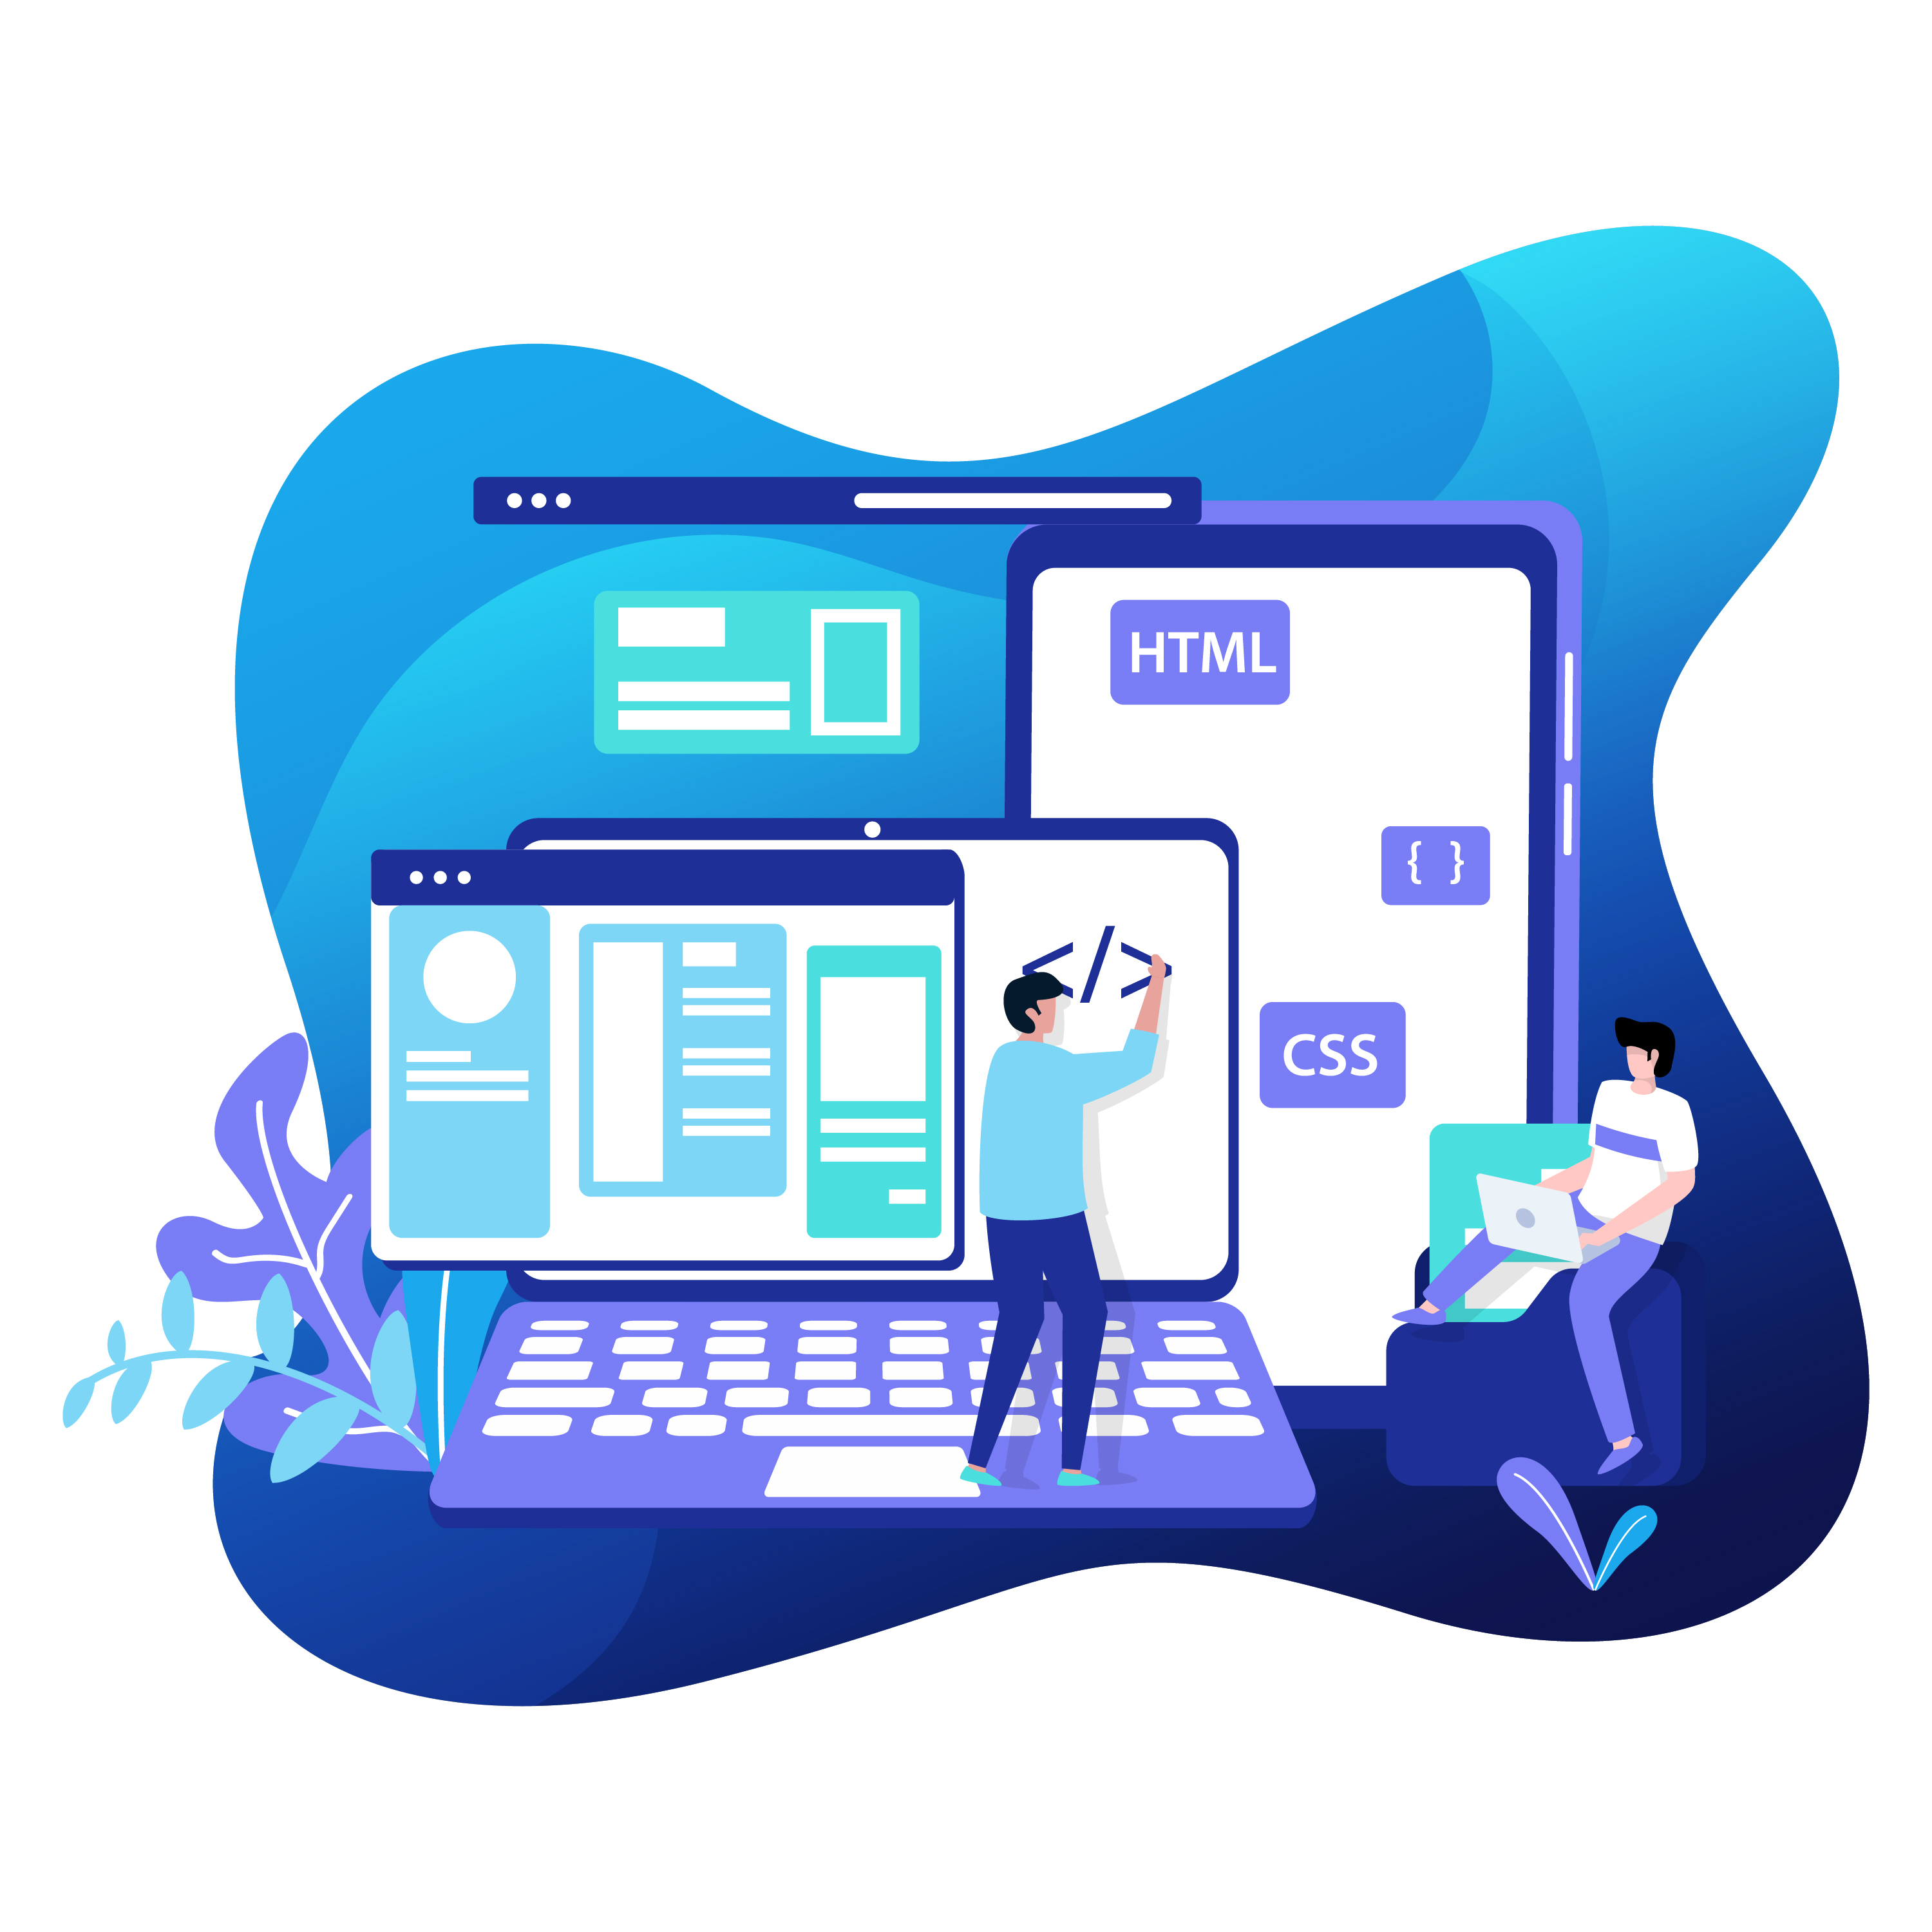 web development illustration service